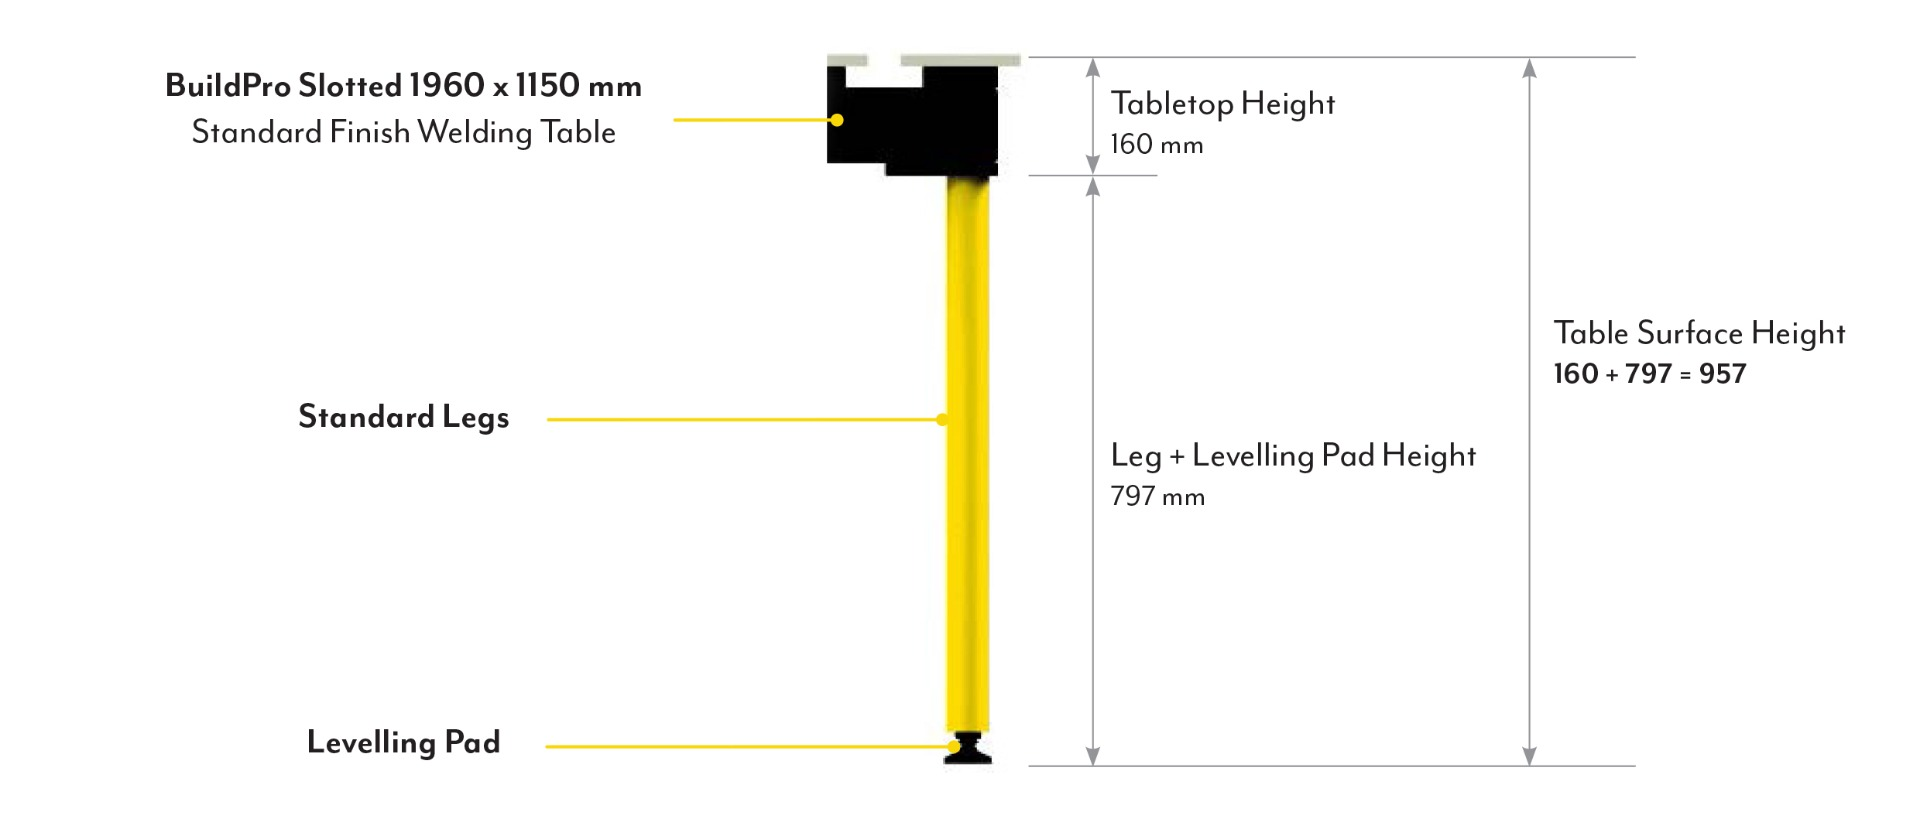 Calculate a buildpro table surface height